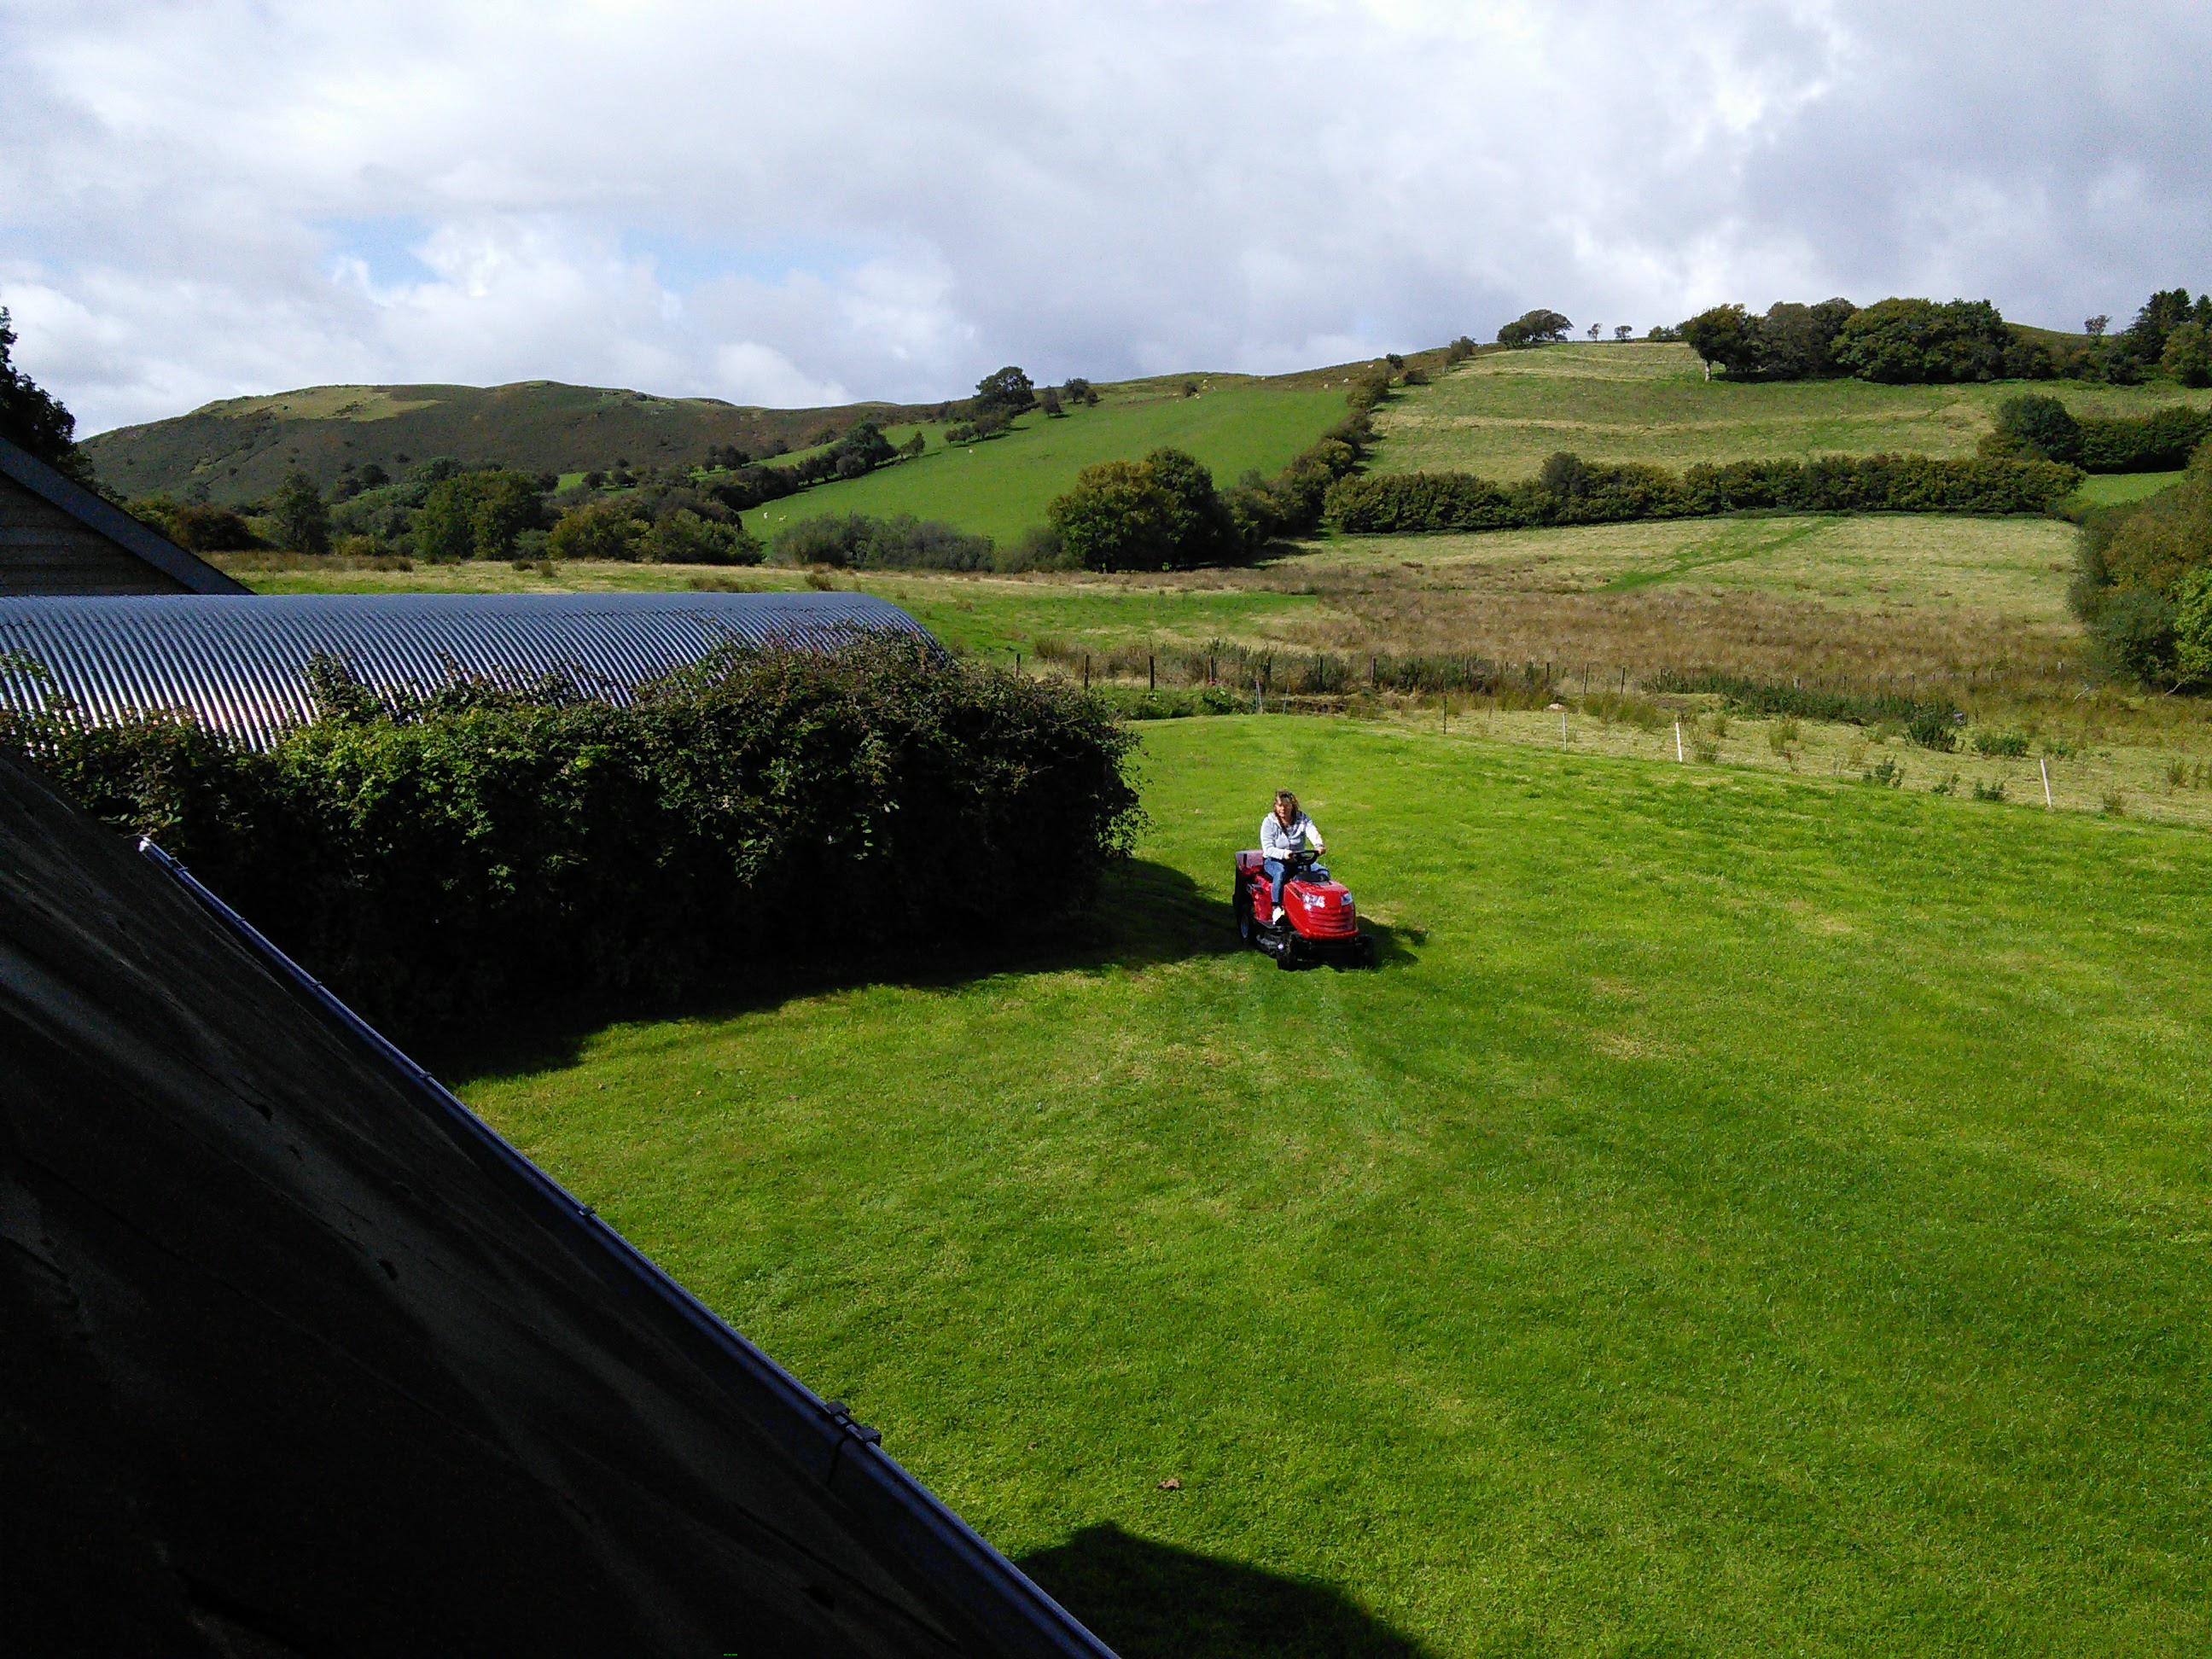 Jo mowing the grass in our back garden